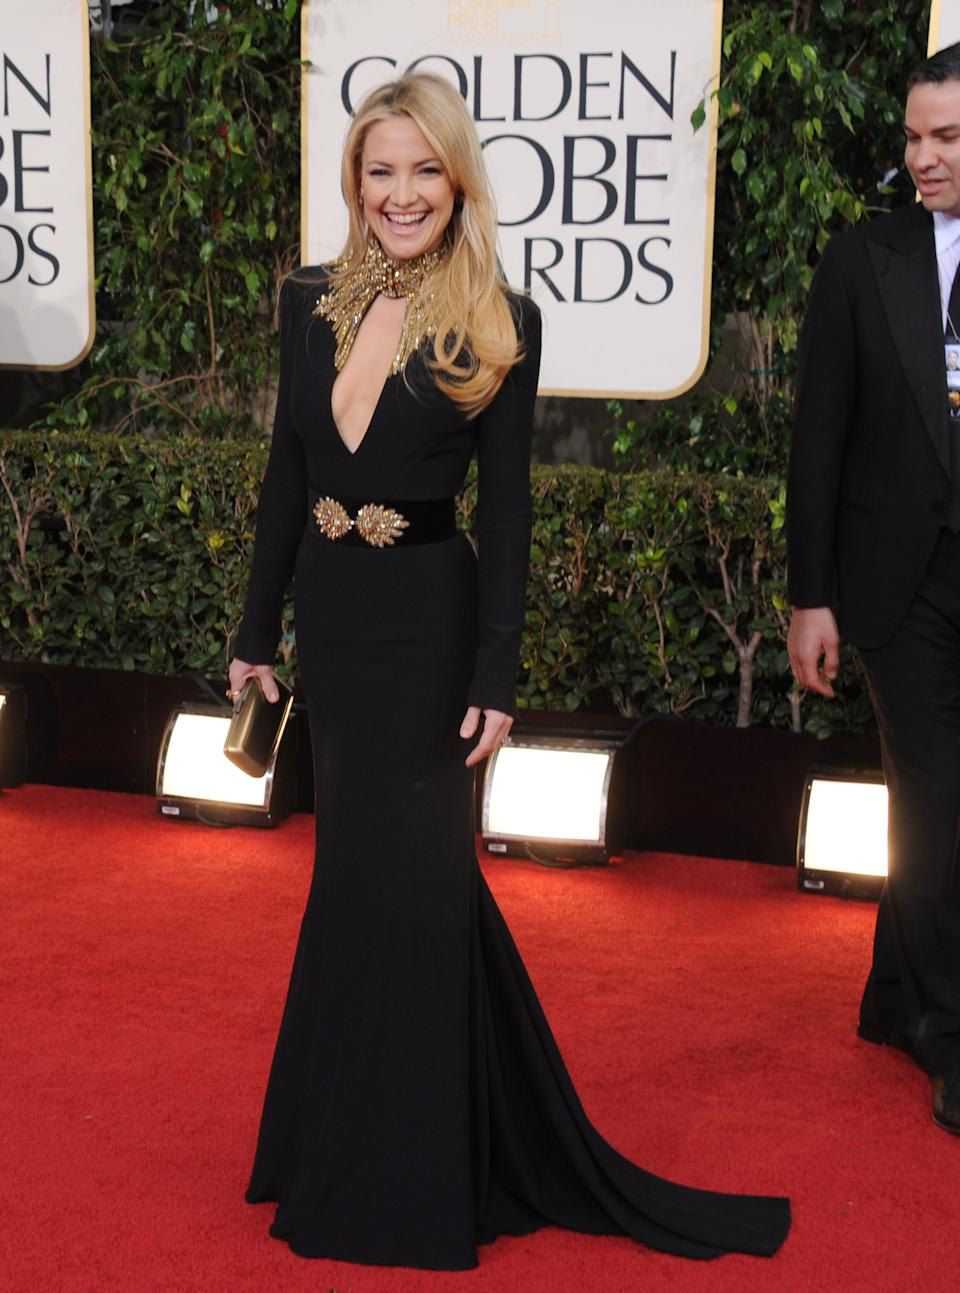 Actress Kate Hudson arrives at the 70th Annual Golden Globe Awards at the Beverly Hilton Hotel on Sunday Jan. 13, 2013, in Beverly Hills, Calif. (Photo by Jordan Strauss/Invision/AP)